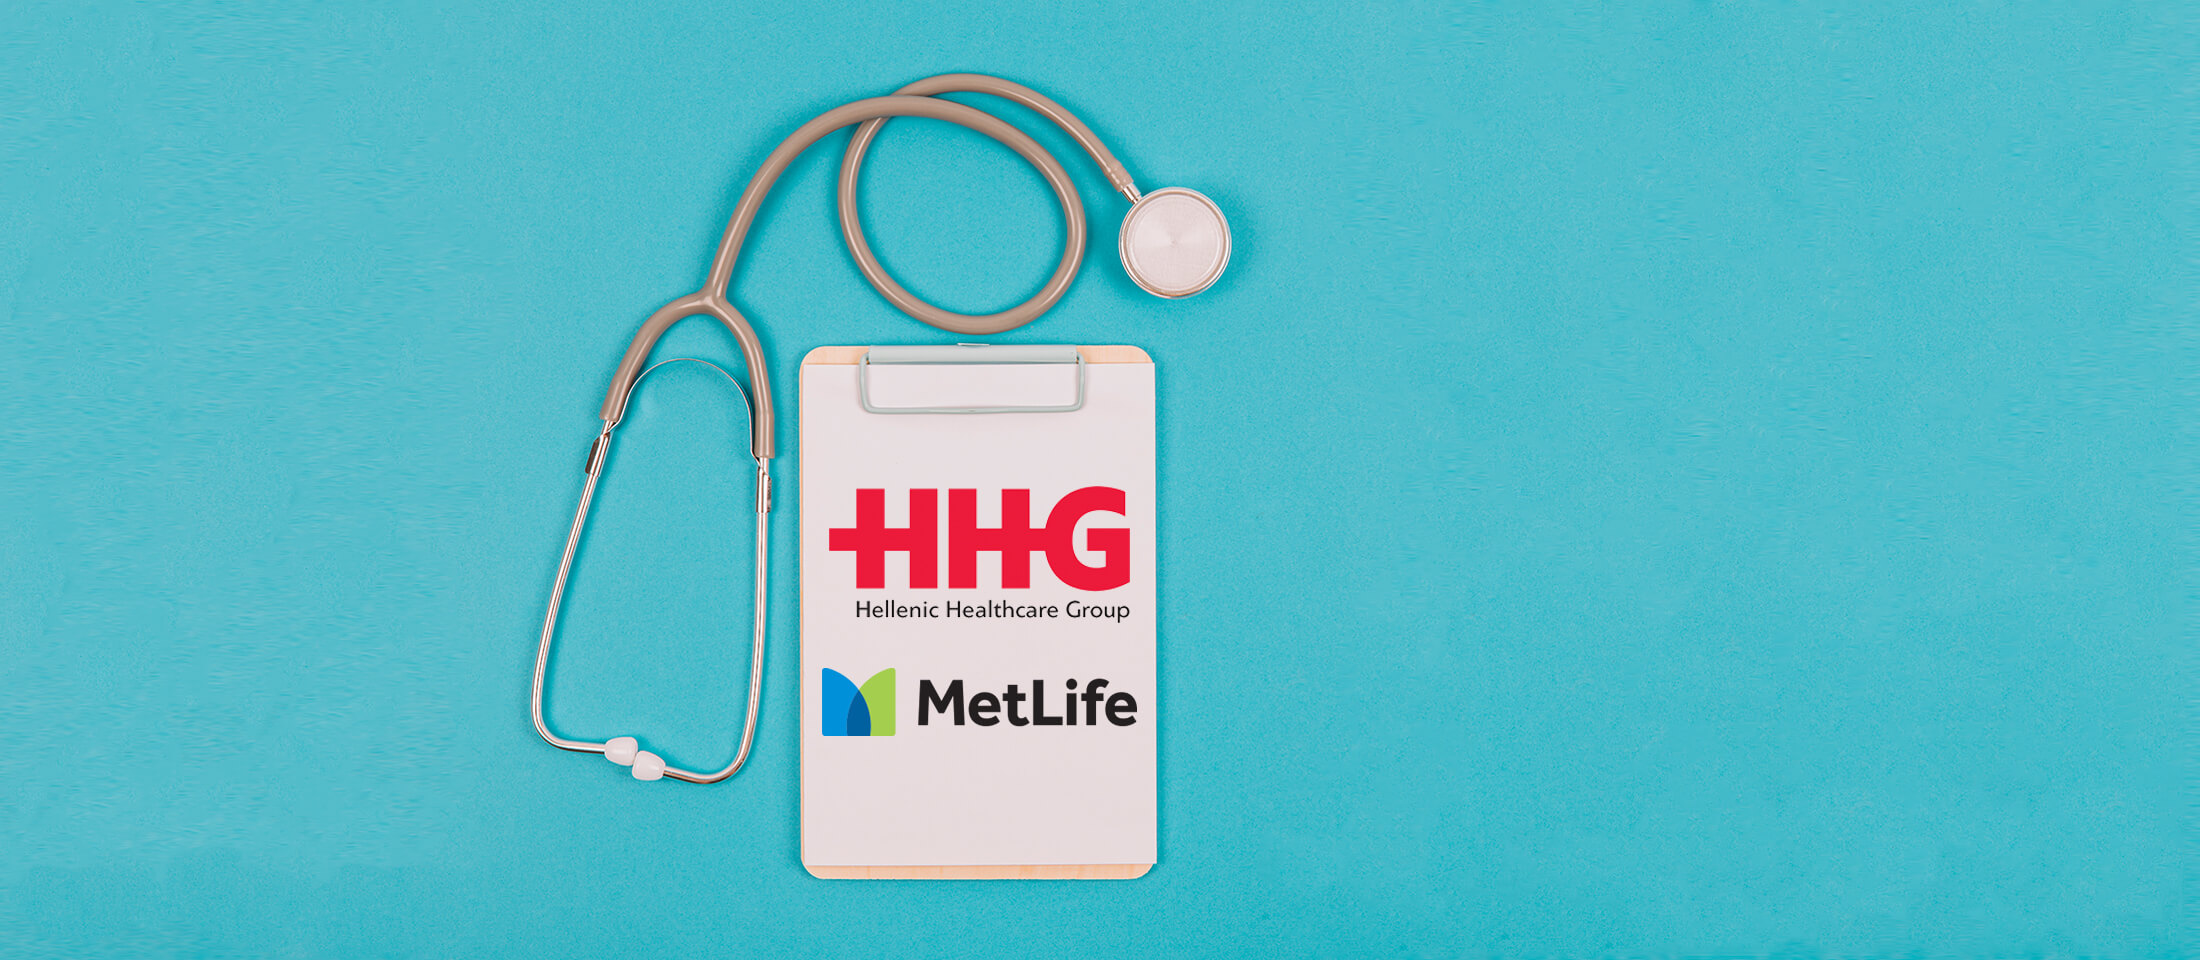 hhg-metlife_slider